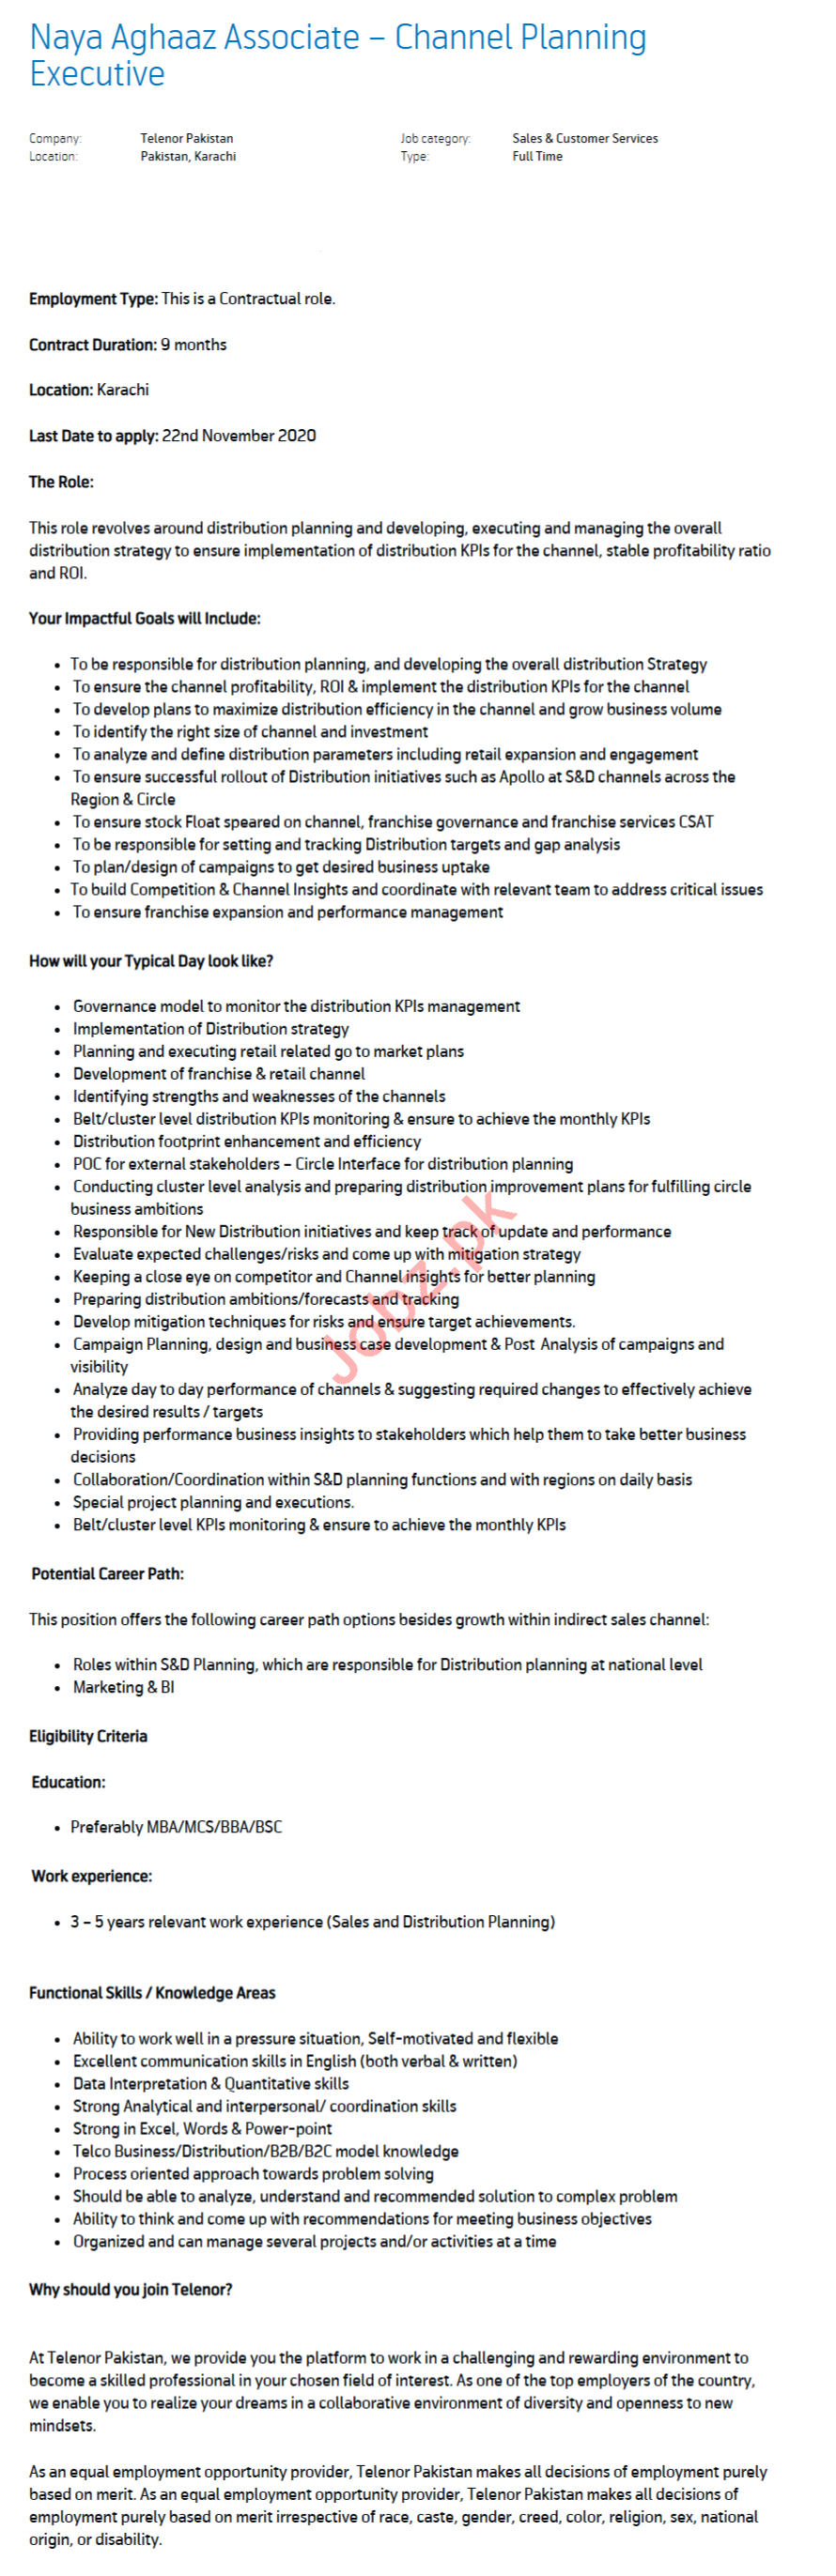 Channel Planning Executive Jobs 2020 in Karachi